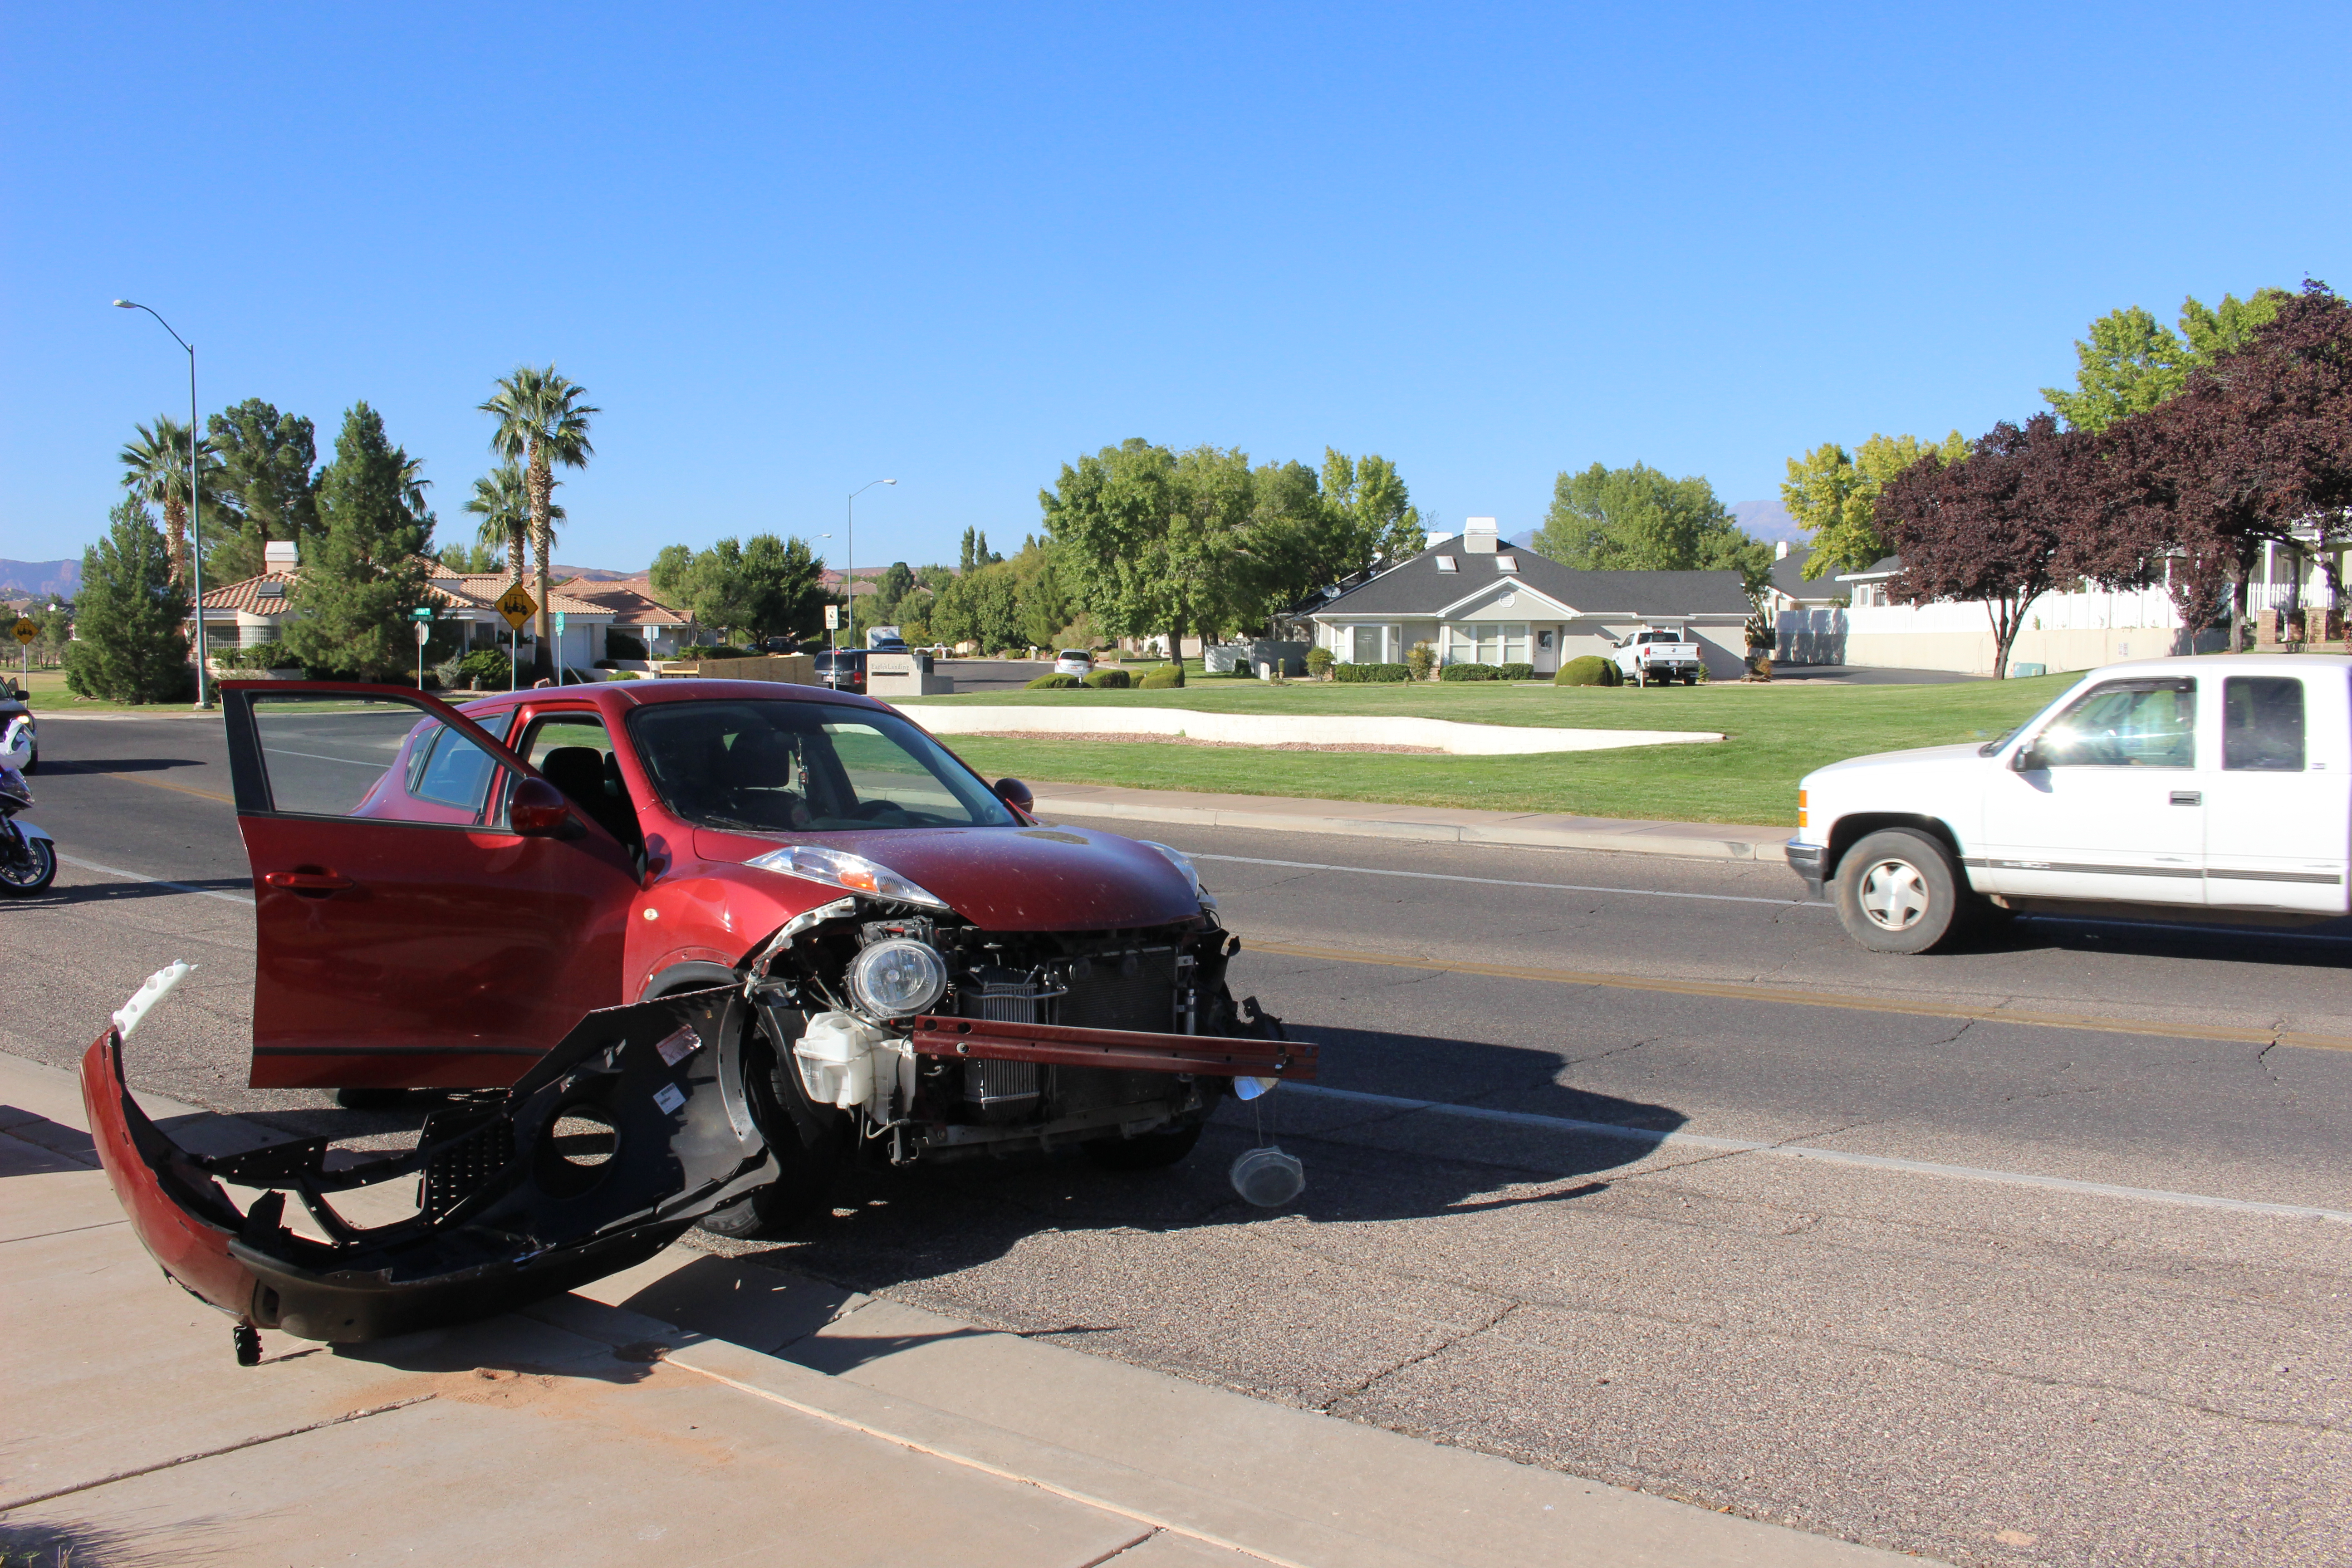 A car sustains heavy damage after a collision on Fort Pierce Drive North, St. George, Utah, Oct. 21, 2016 | Photo by Joseph Witham, St. George News